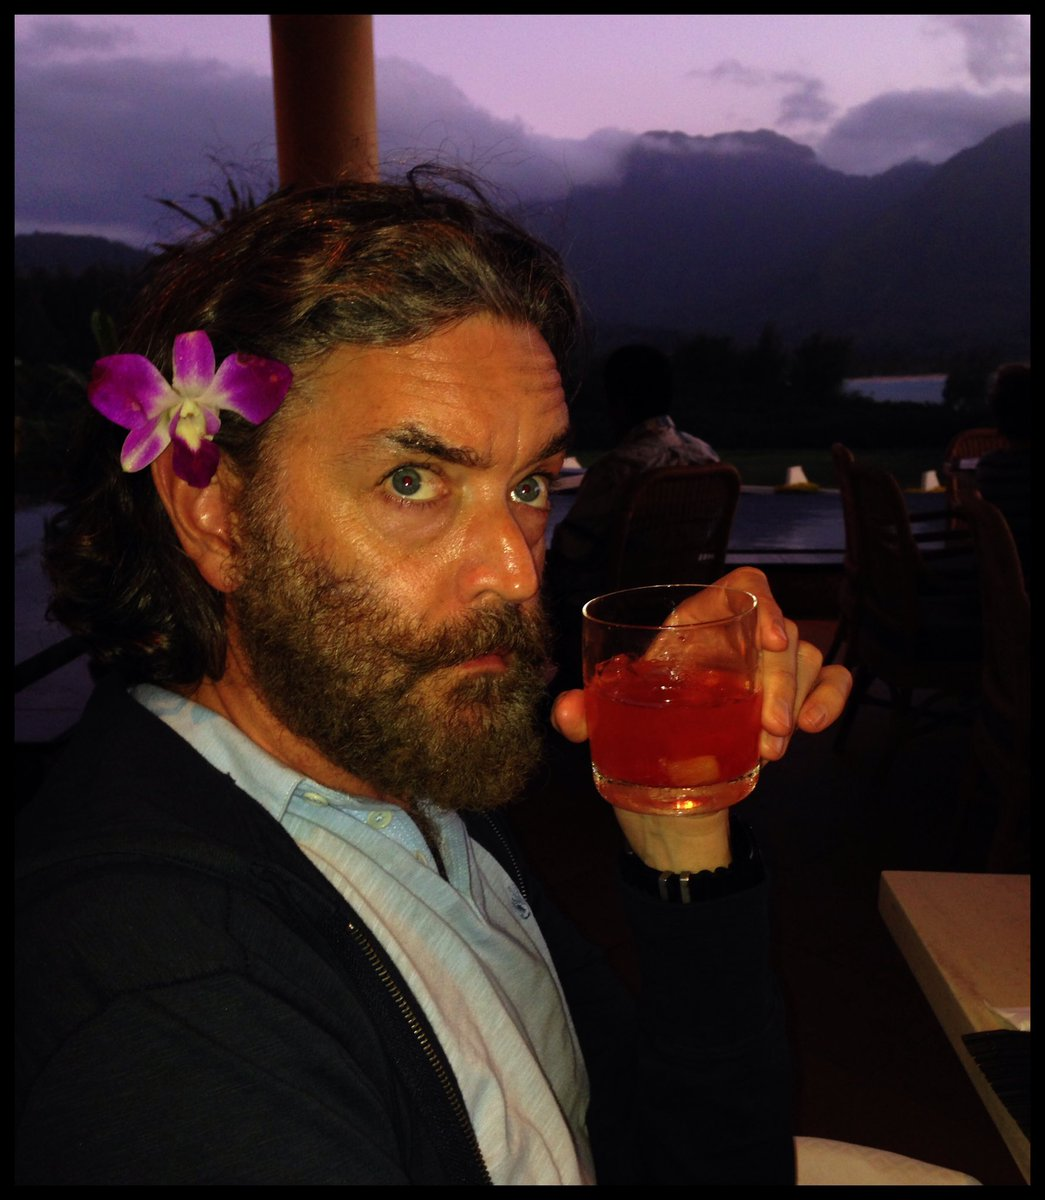 #TBT to mai tais and purple skies in Hawaii many years ago